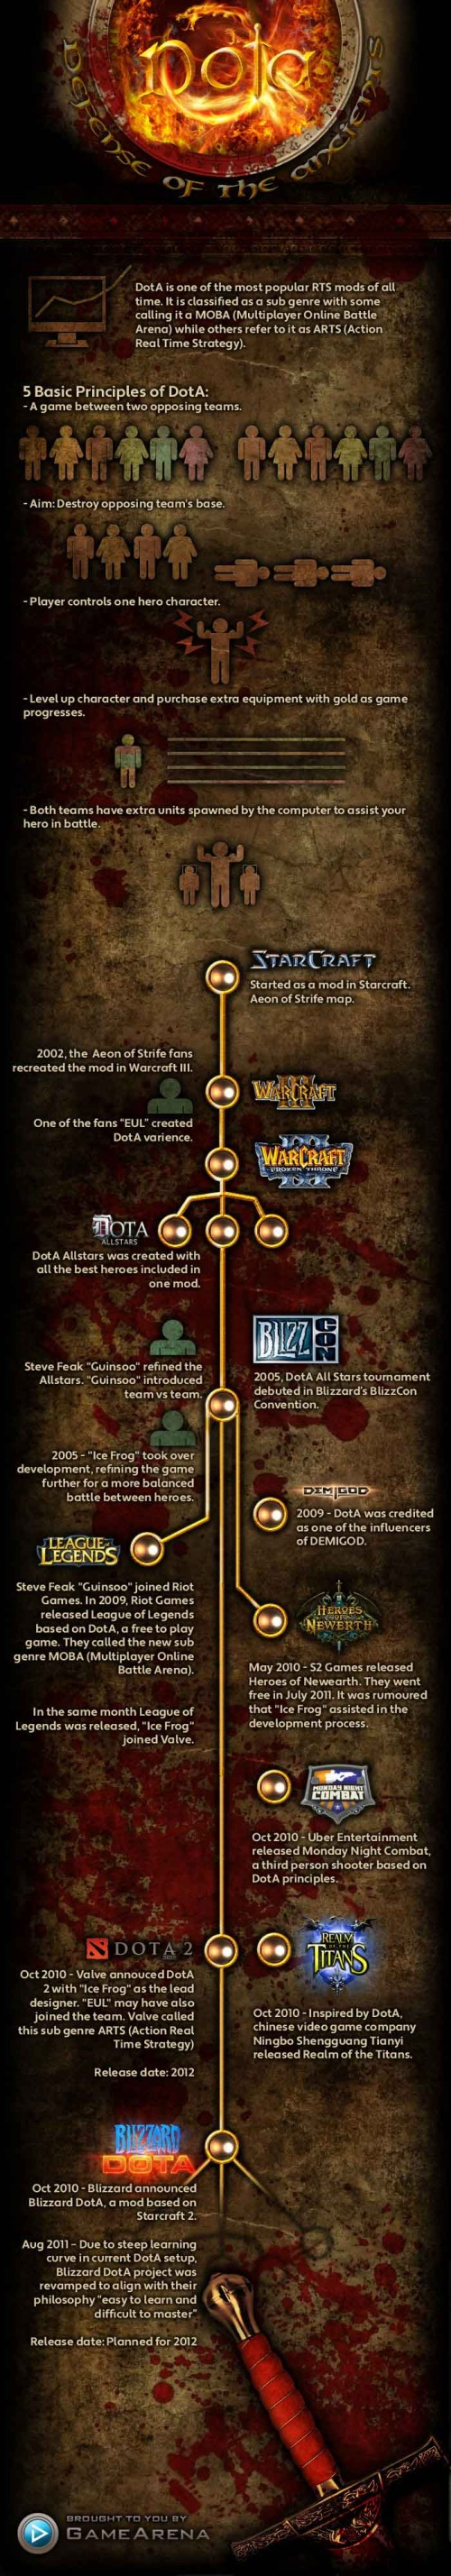 Defense of the Ancients (DotA) Infographic